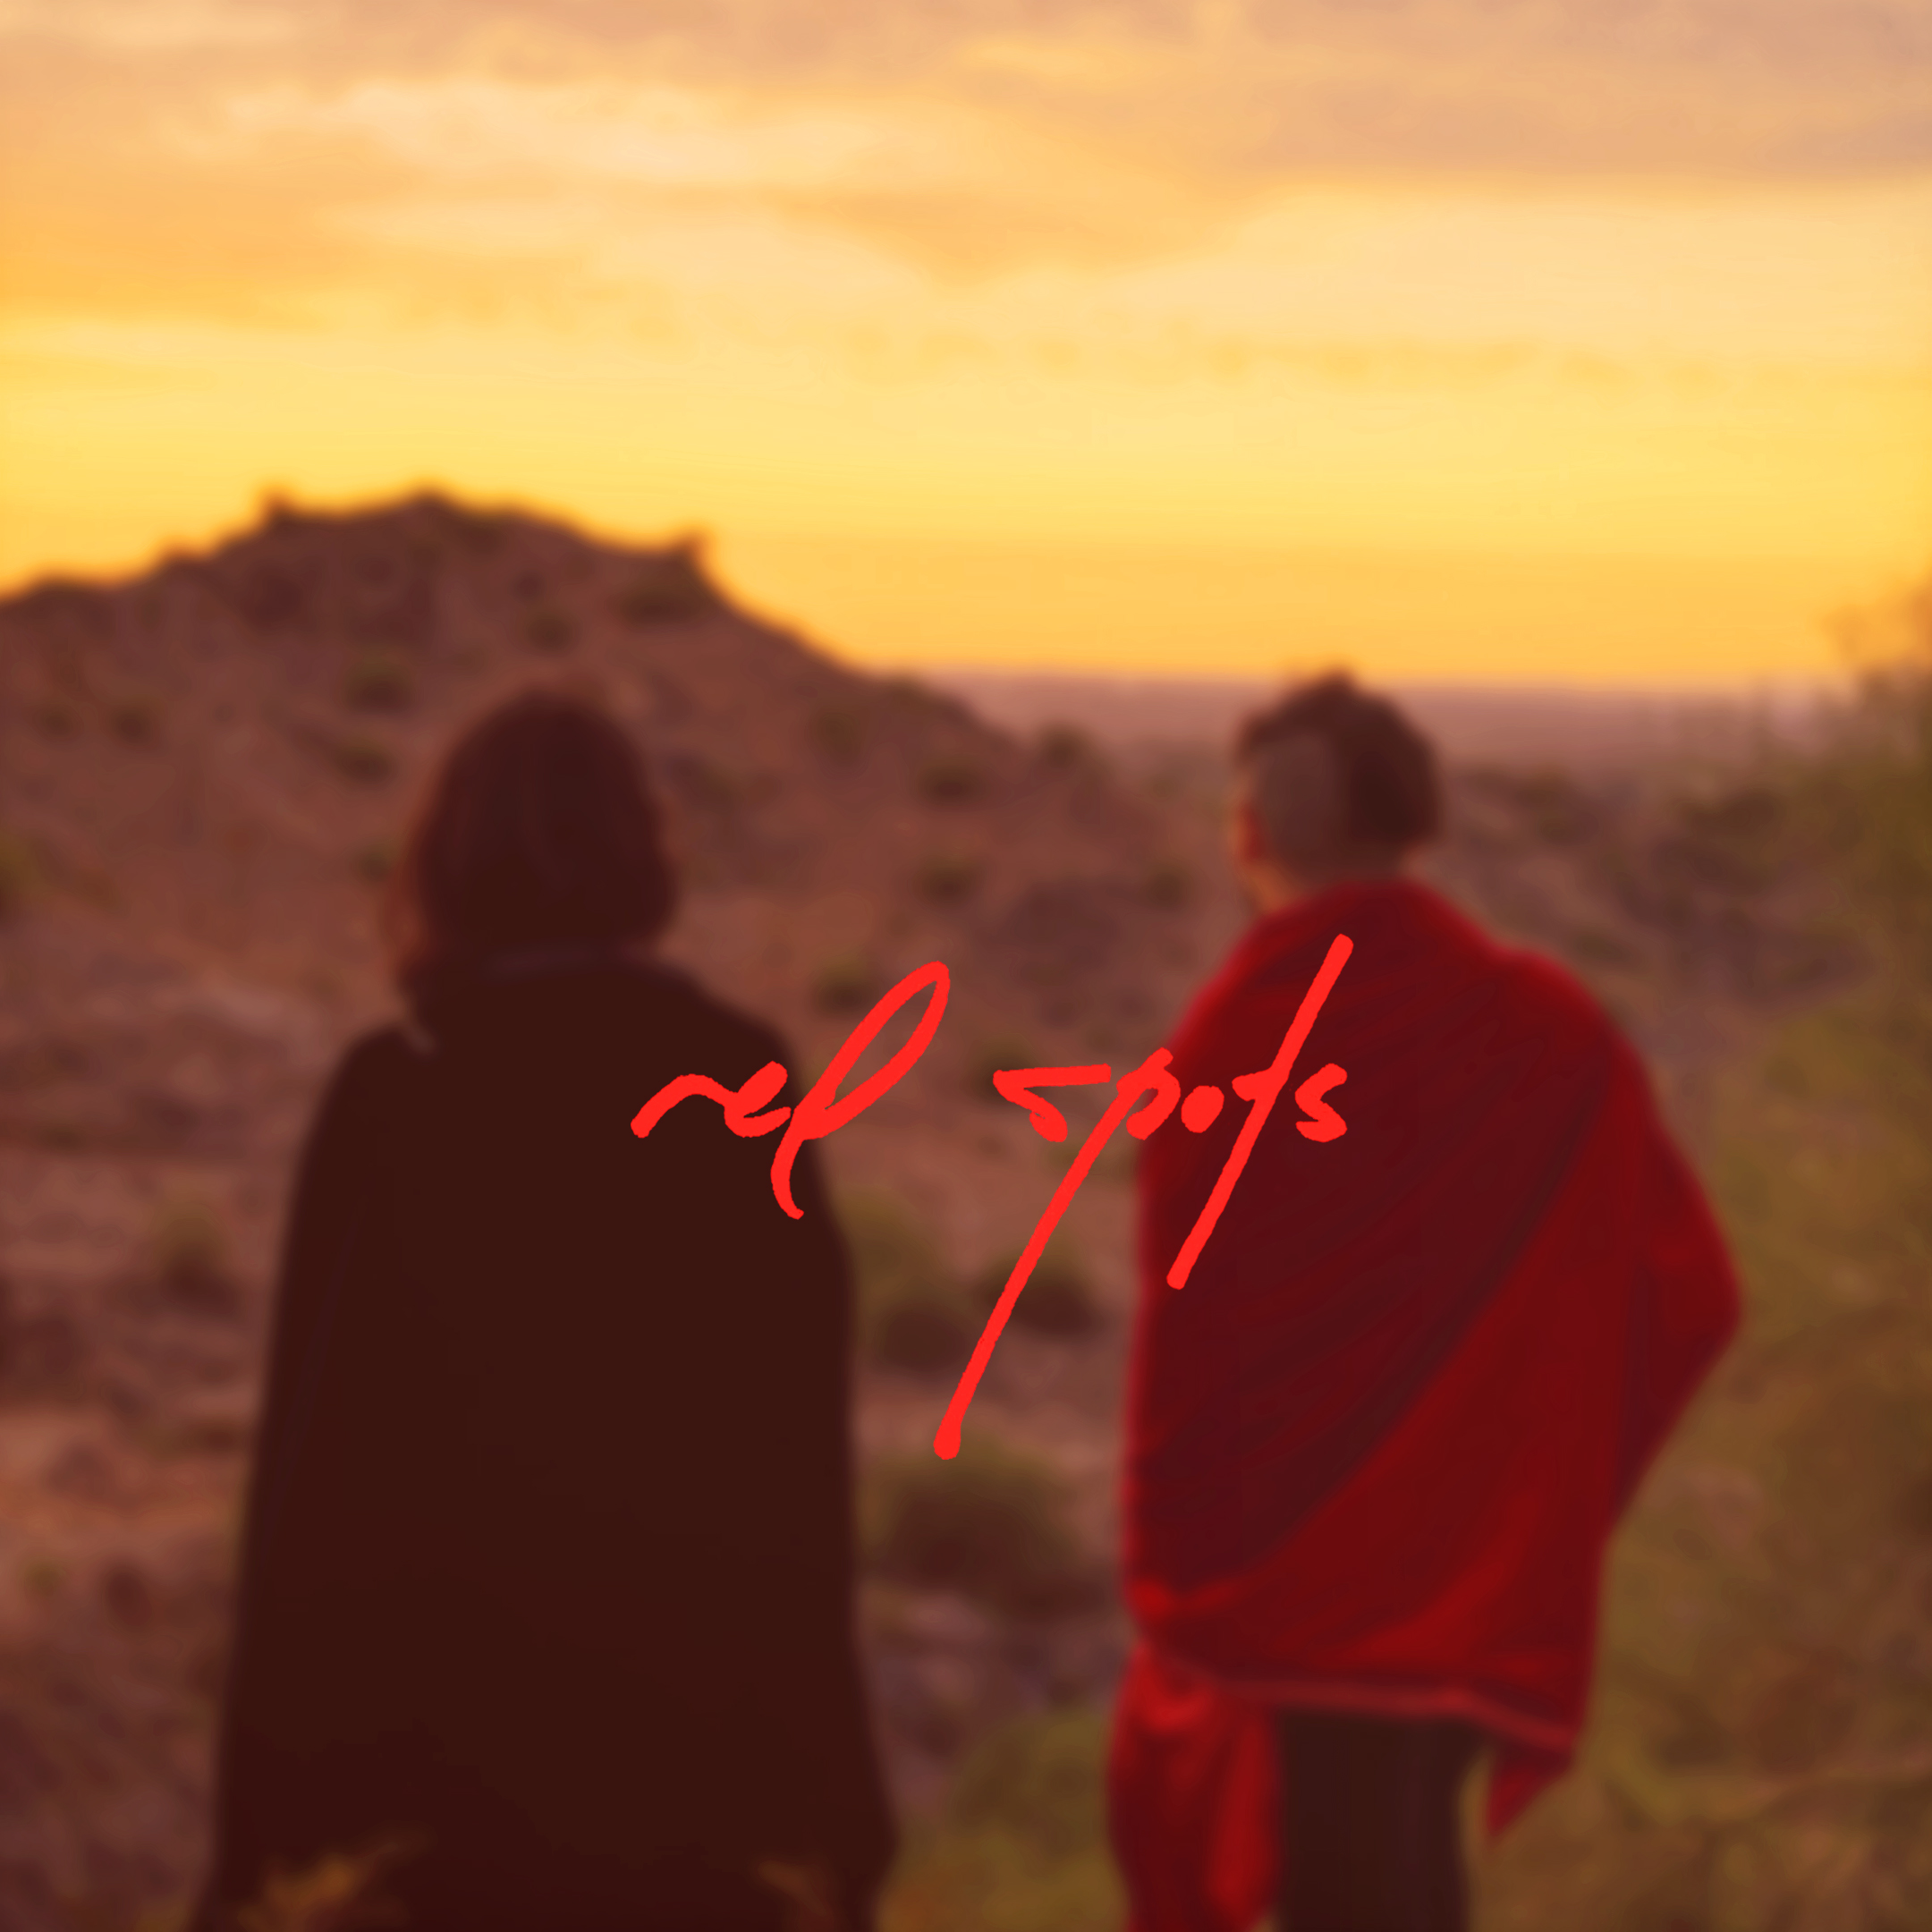 RED SPOTS album cover FINAL.jpg